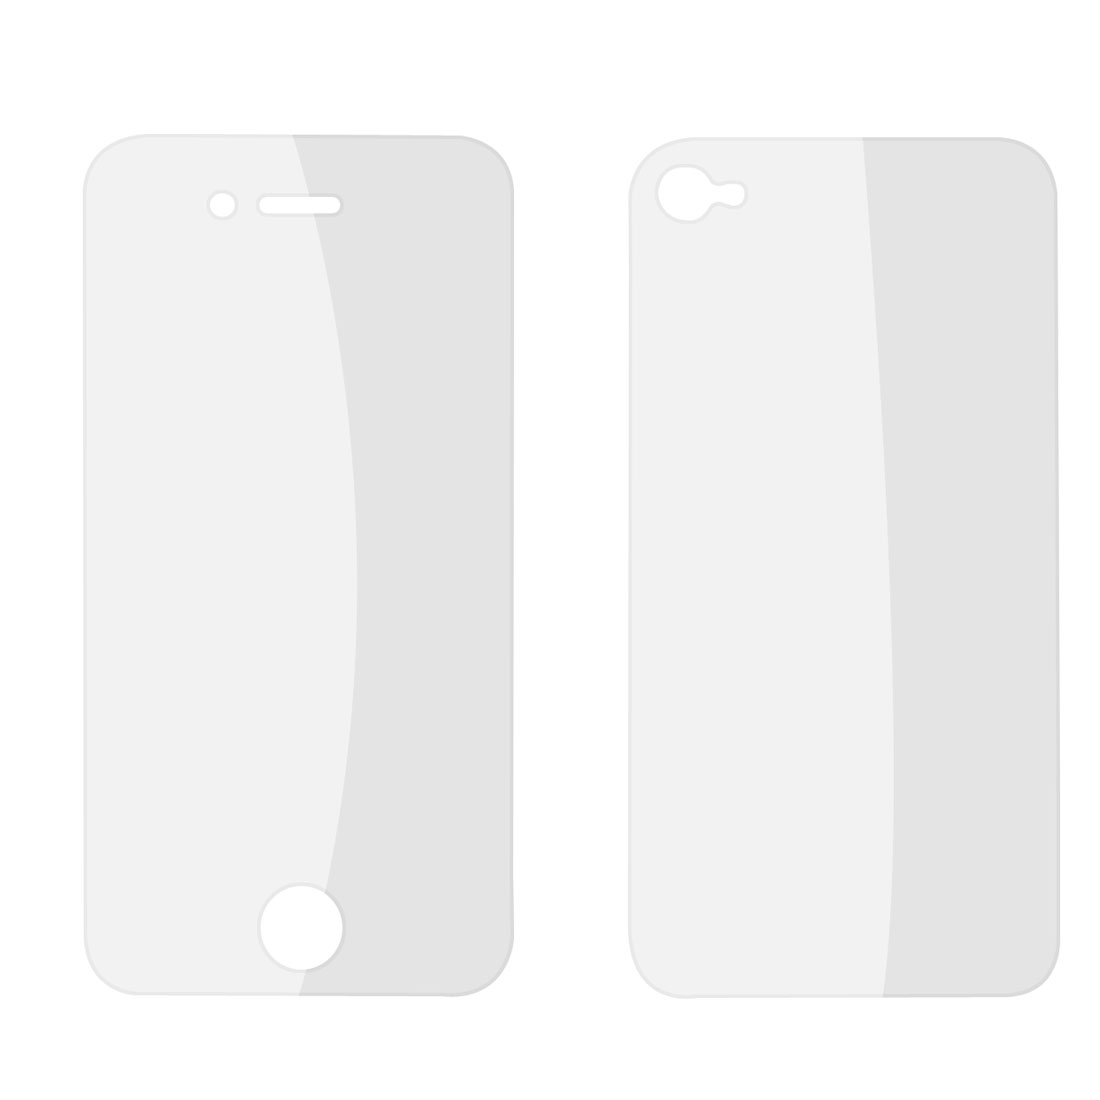 Pair Front Back Clear LCD Screen Guard Film Protector for iPhone 4 4G 4S 4GS